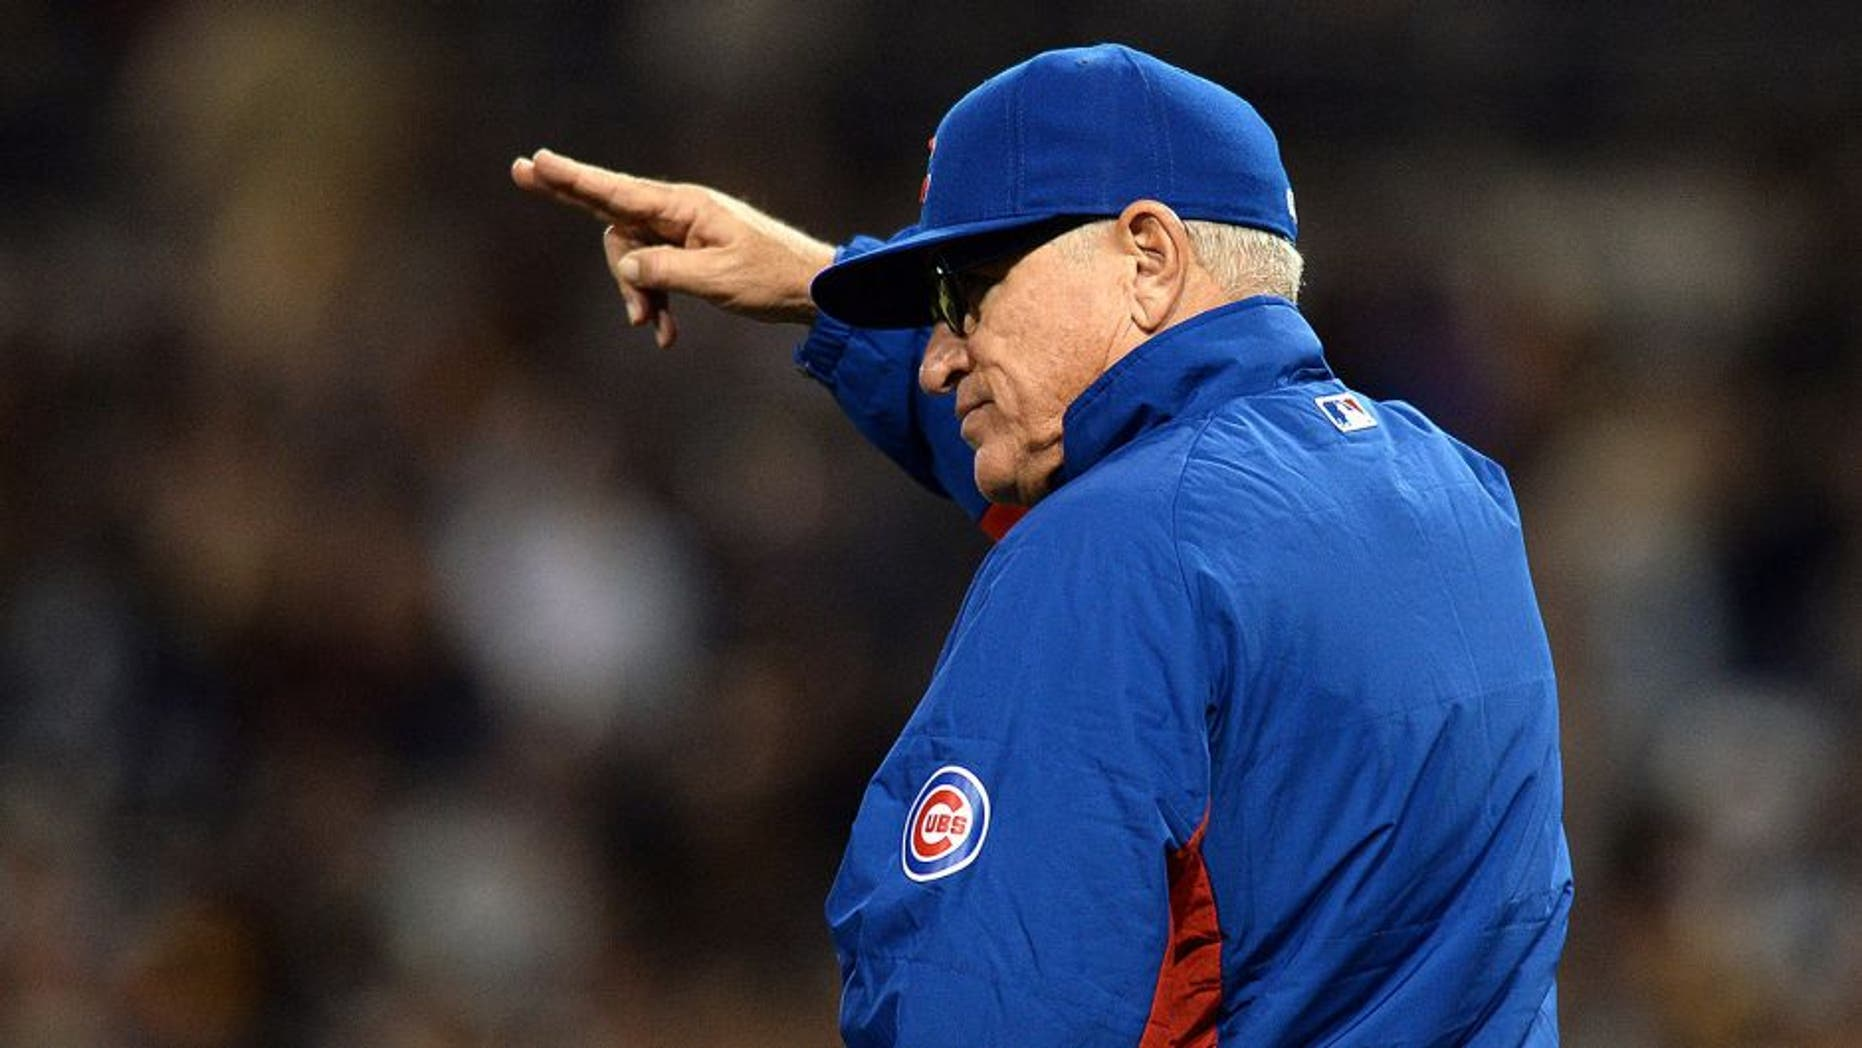 May 20, 2015; San Diego, CA, USA; Chicago Cubs manager Joe Maddon (70) gestures to the bullpen in the seventh inning against the San Diego Padres at Petco Park. Mandatory Credit: Jake Roth-USA TODAY Sports